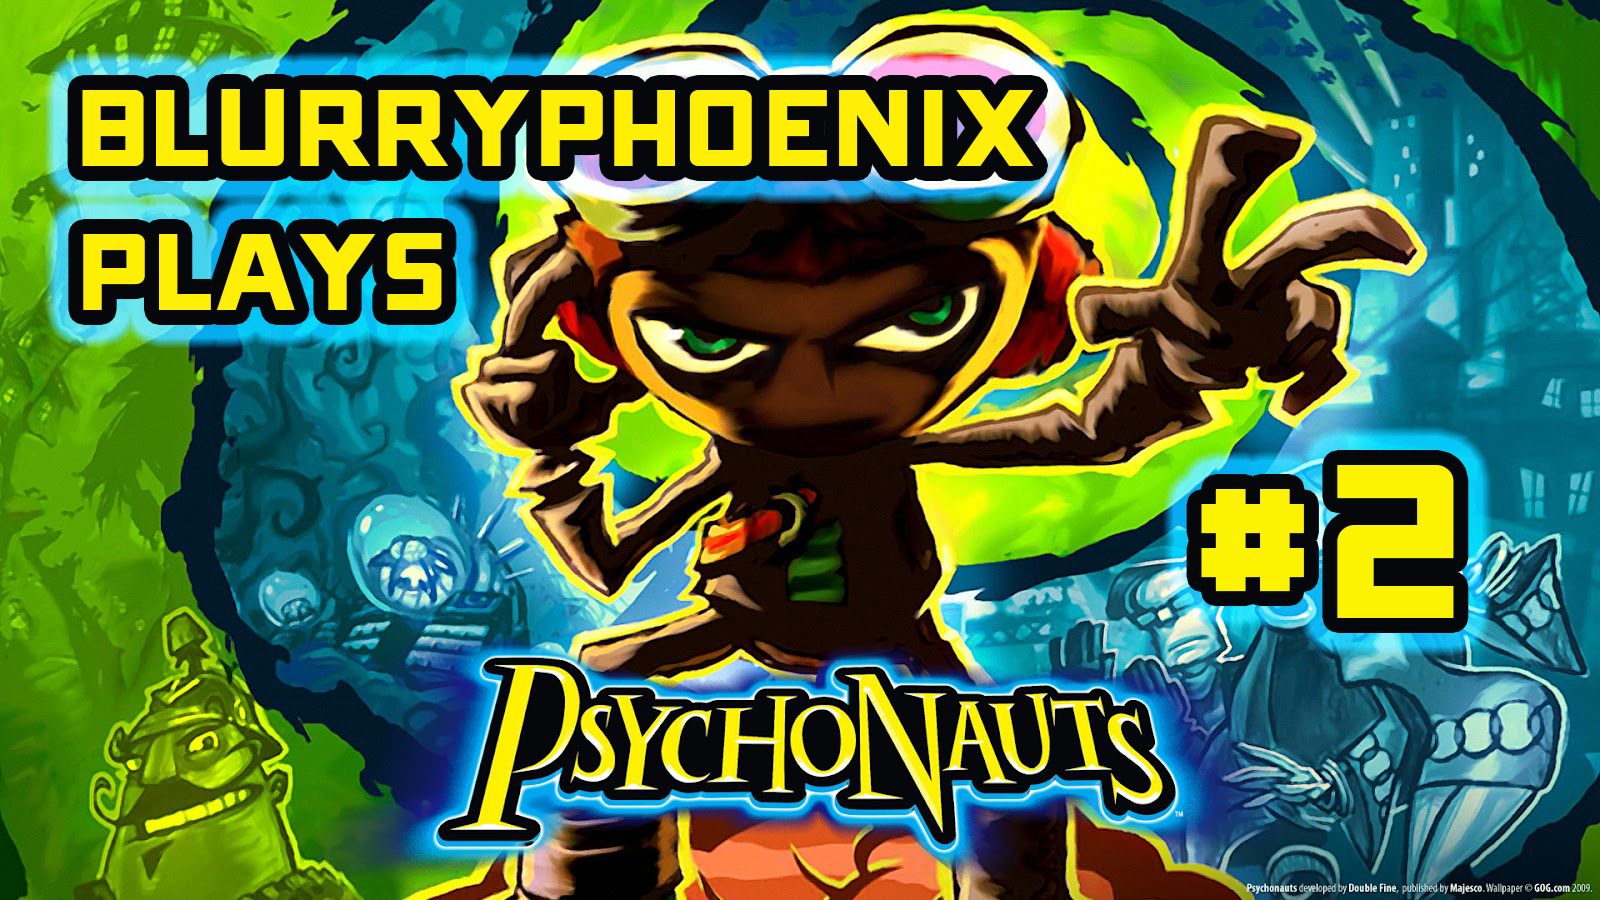 BlurryPhoenix Streams: Psychonauts (Pt. 2)